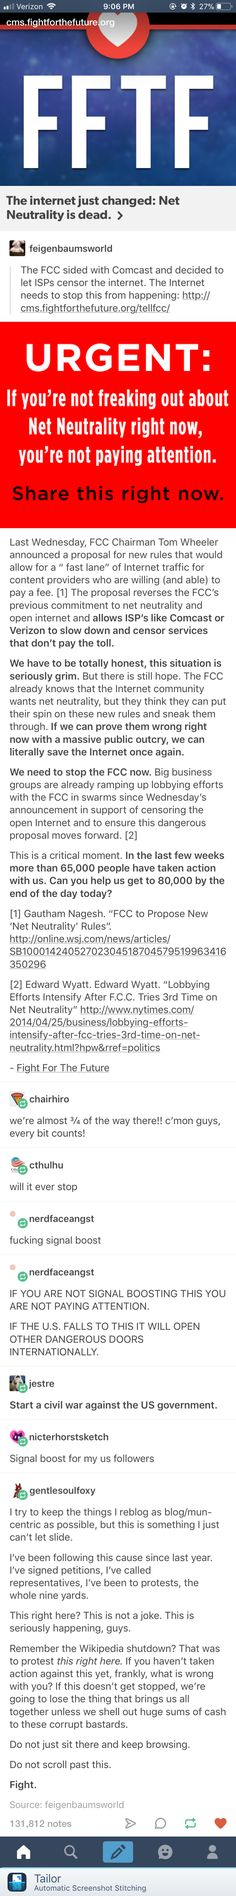 I know this isn't Art but this is something really important. The FCC votes Dec 14 whether or not to keep net neutrality.